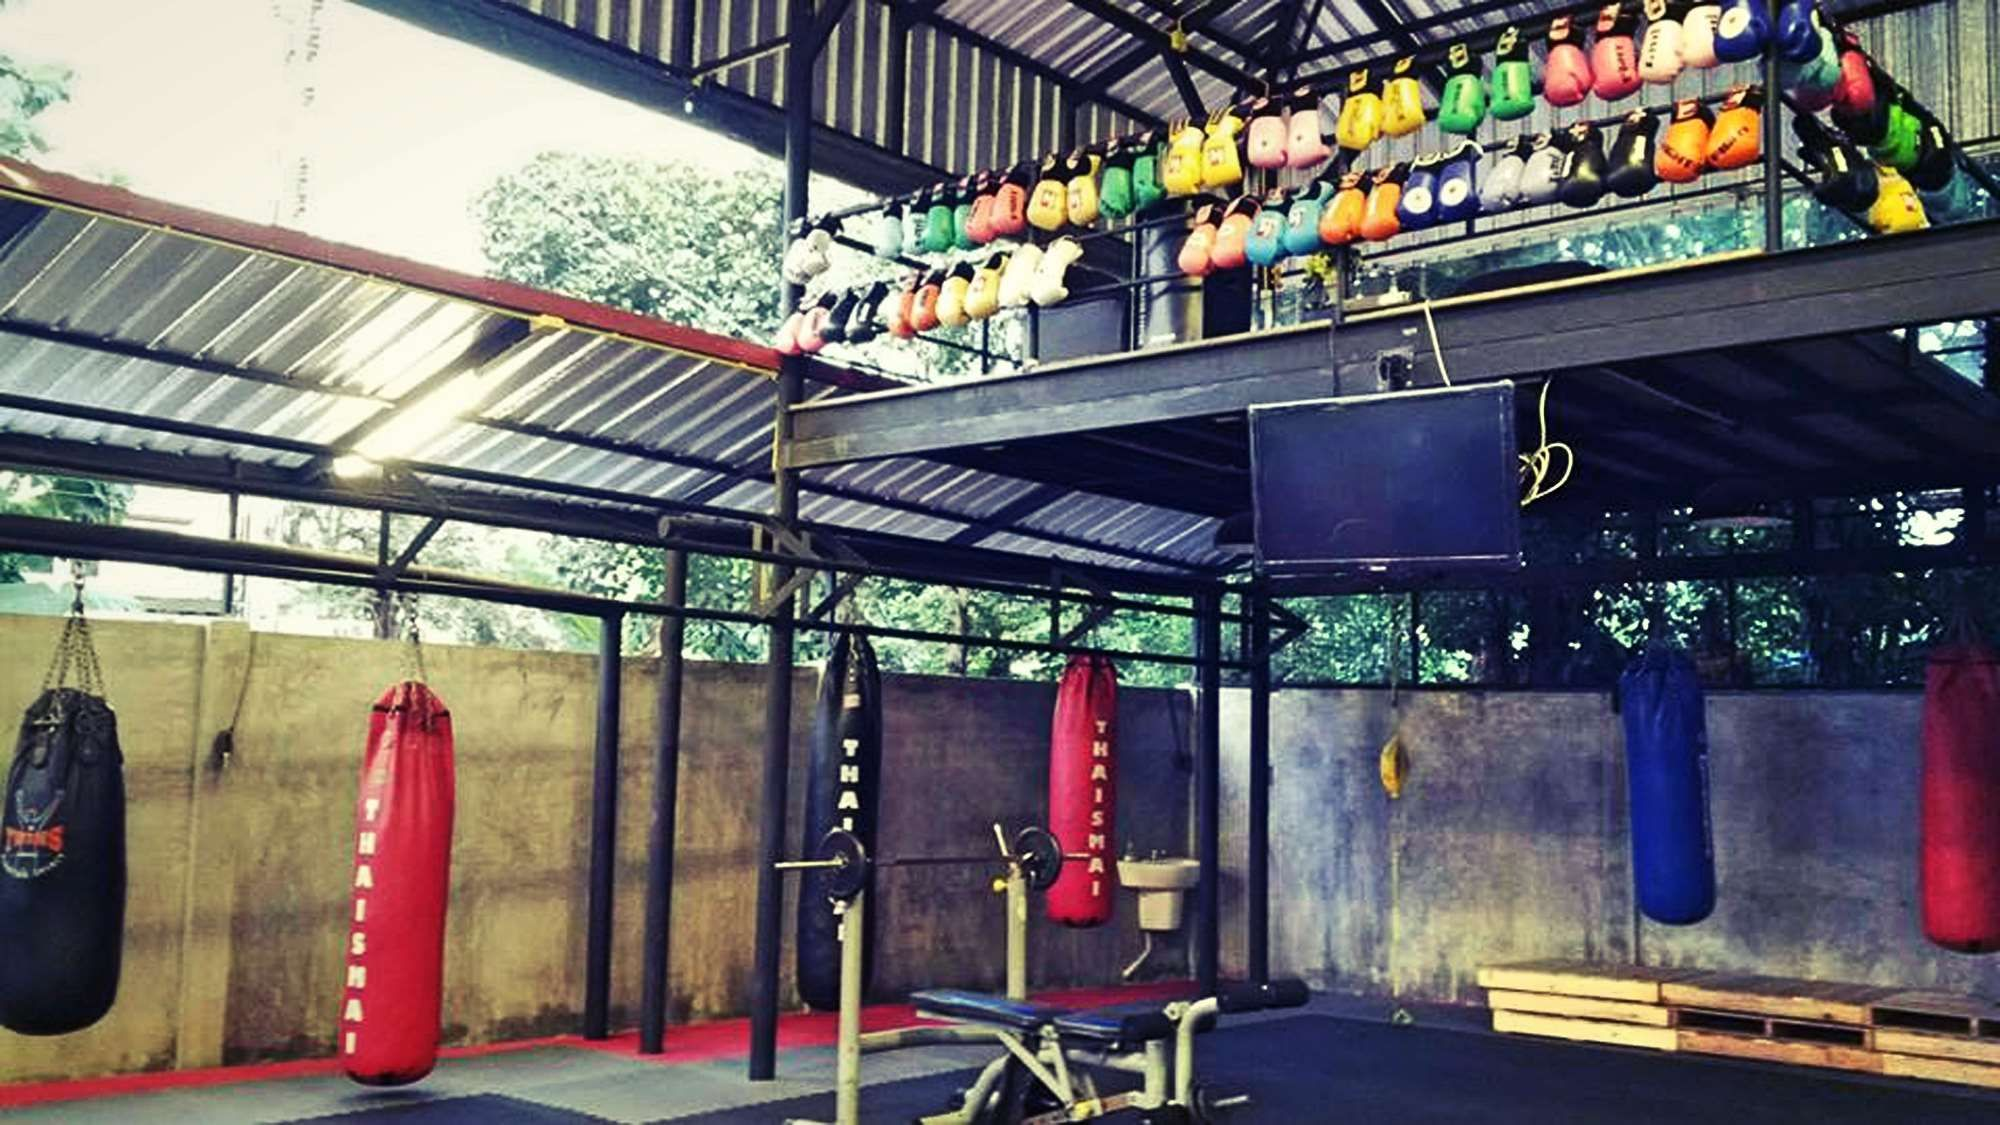 Forum on this topic: Step Inside The Designer Muay Thai Gym , step-inside-the-designer-muay-thai-gym/